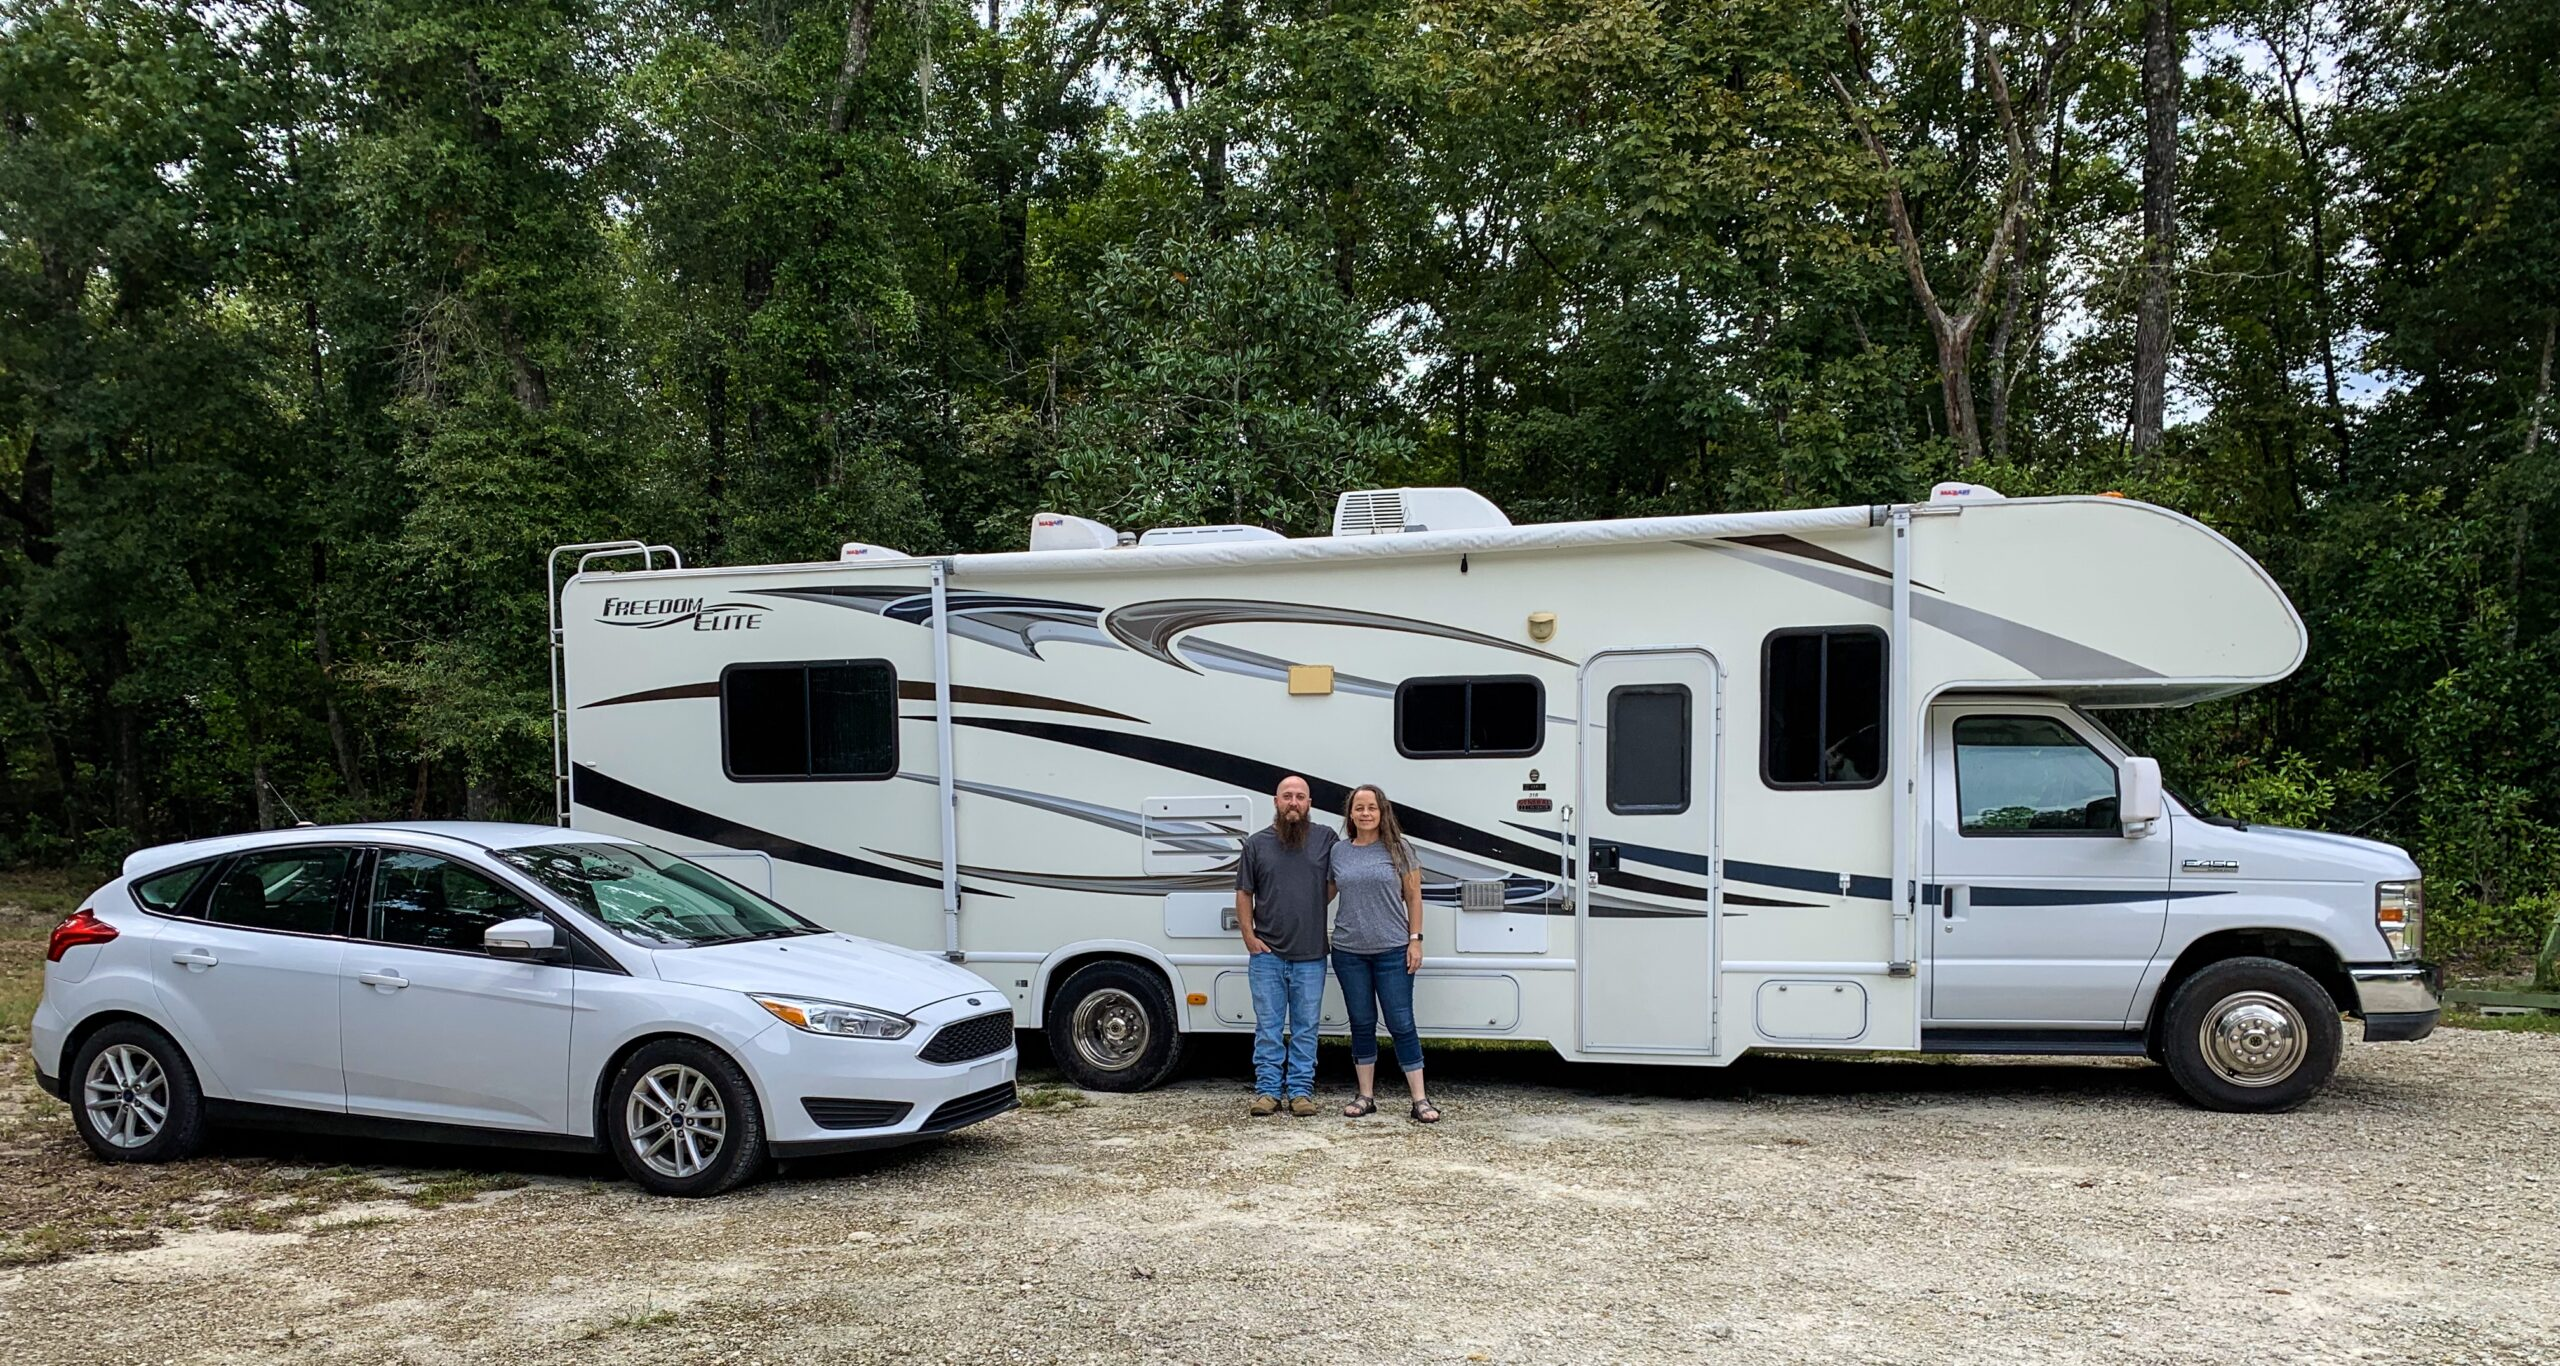 Angie and Jared Kickliter RV and Tow Vehicle